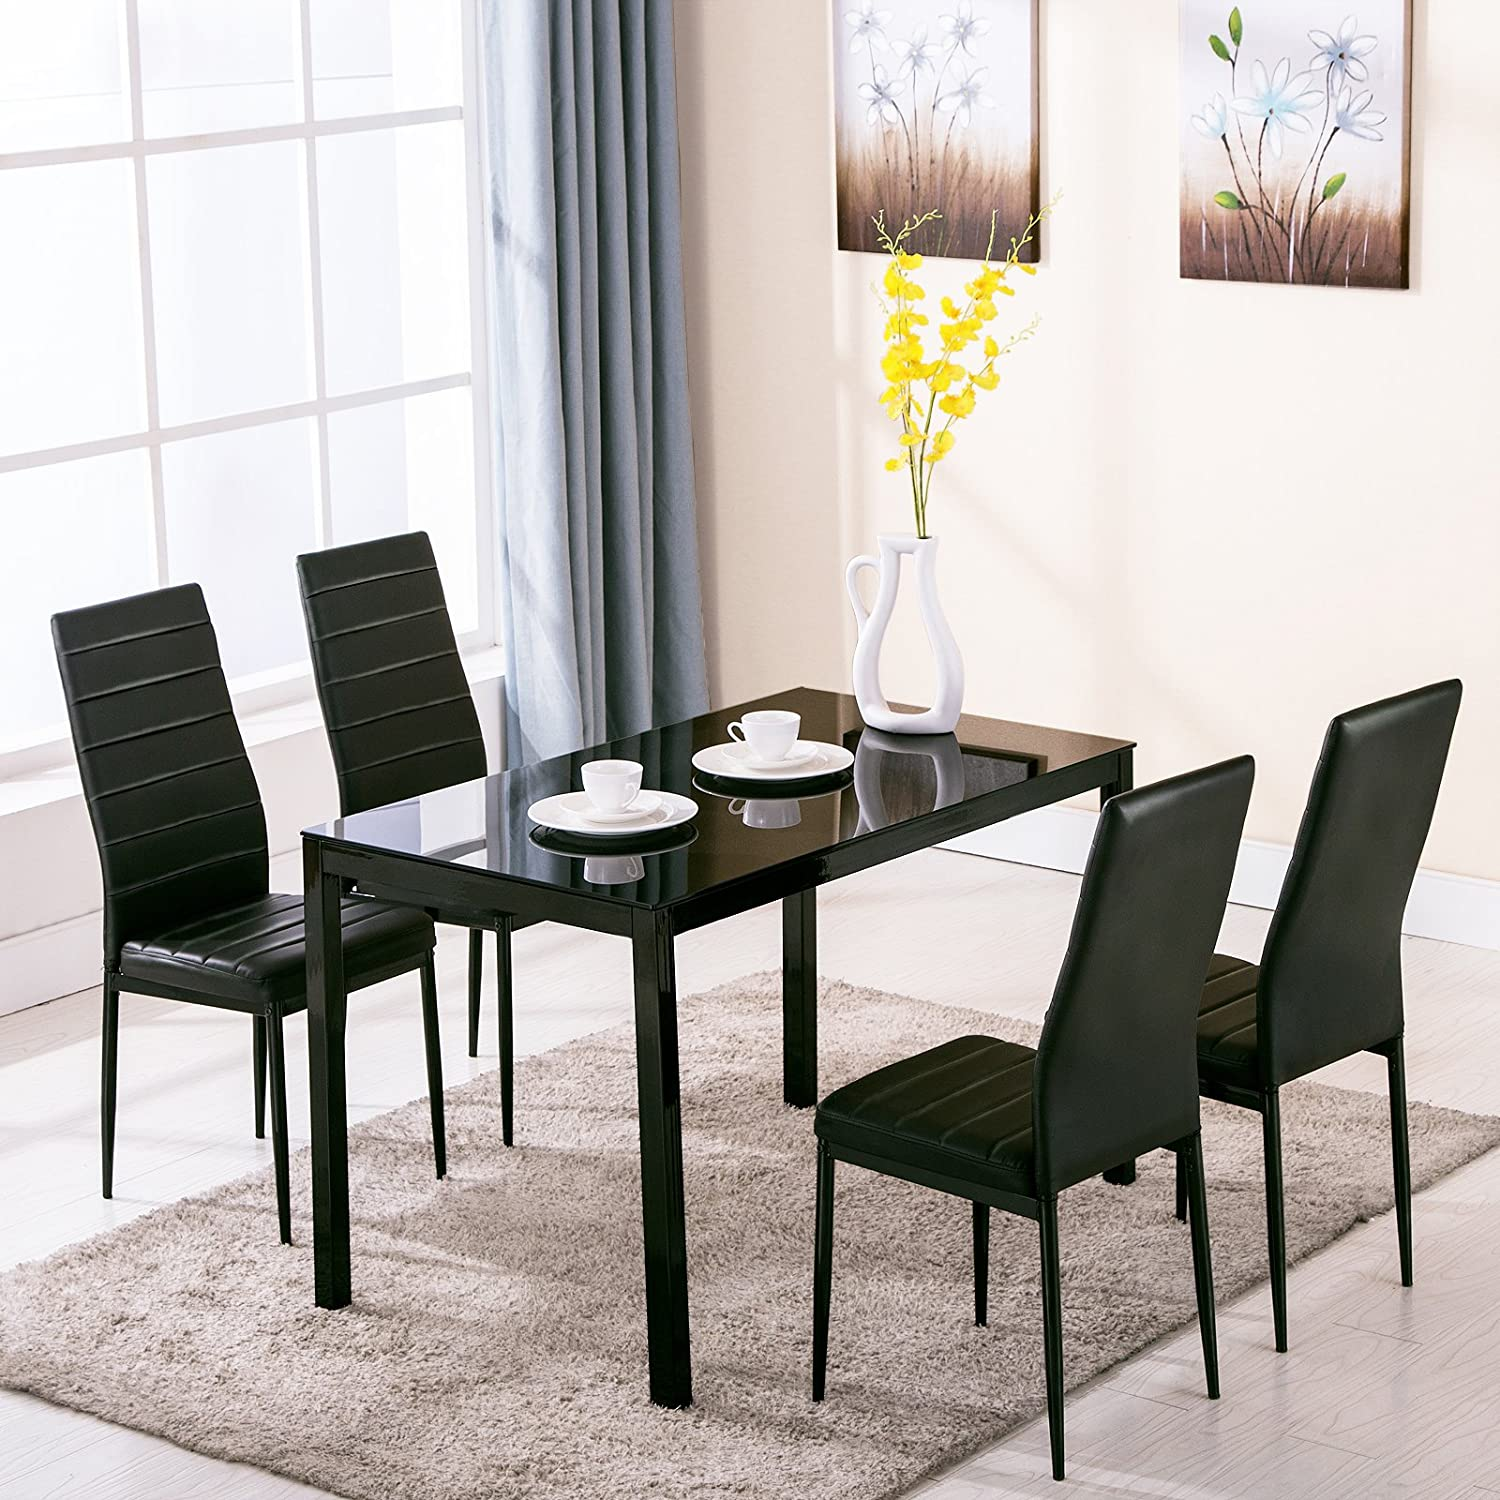 Amazon.com   4Family 5 Piece Dining Table Set 4 Chairs Glass Metal Kitchen  Room Breakfast Furniture   Table U0026 Chair Sets